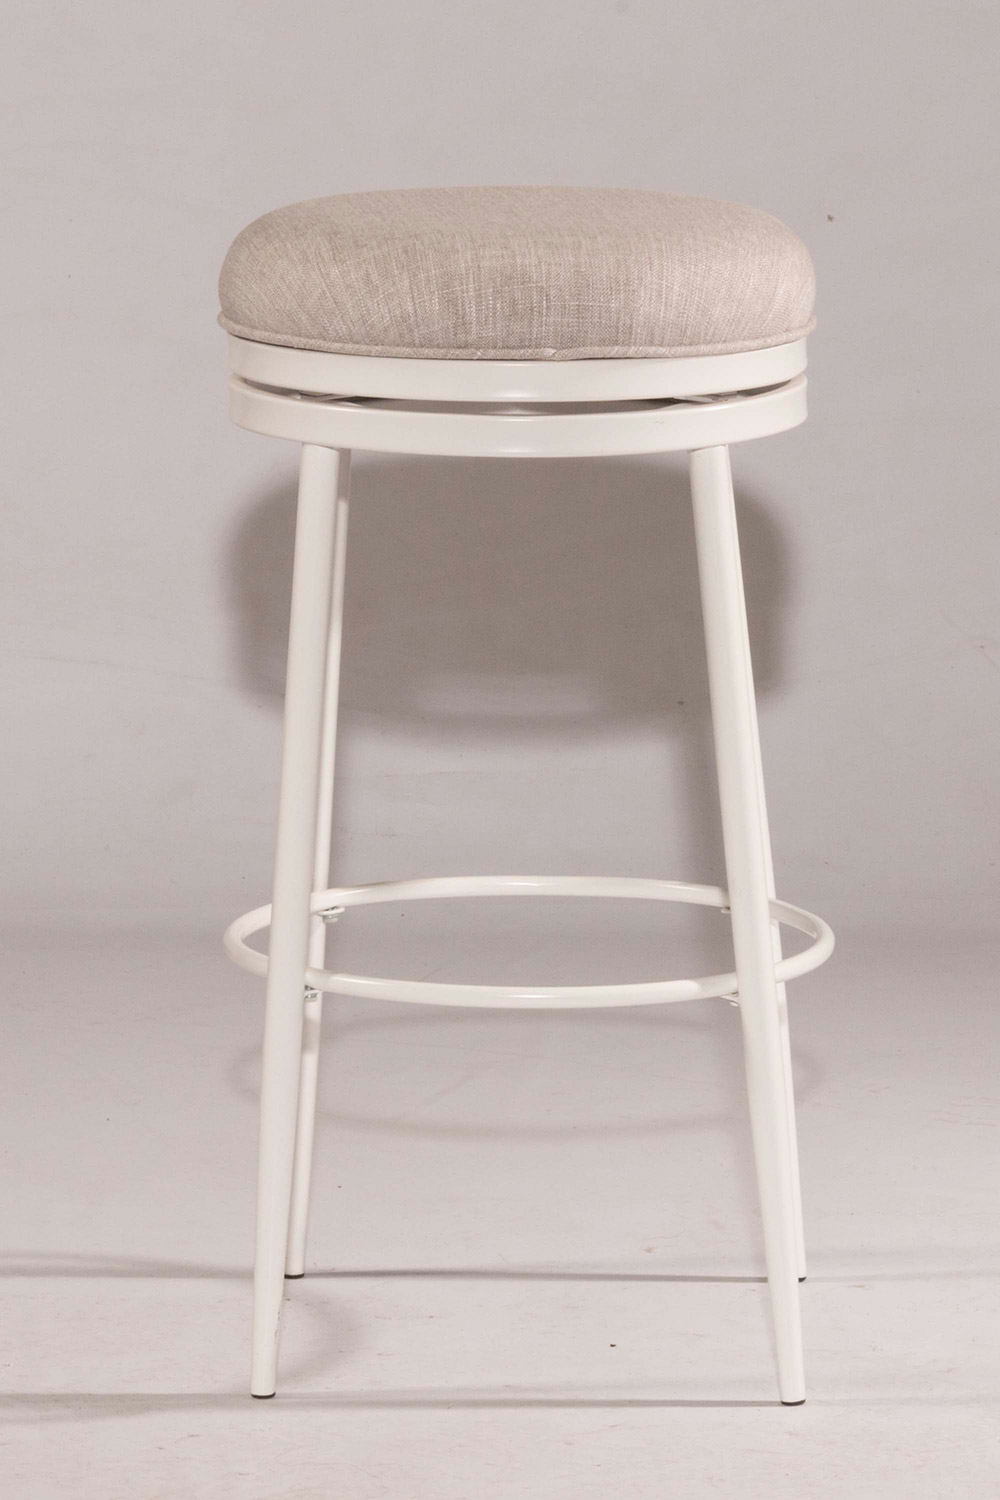 Hillsdale Aubrie Swivel Backless Counter Stool - White - Silver Fabric